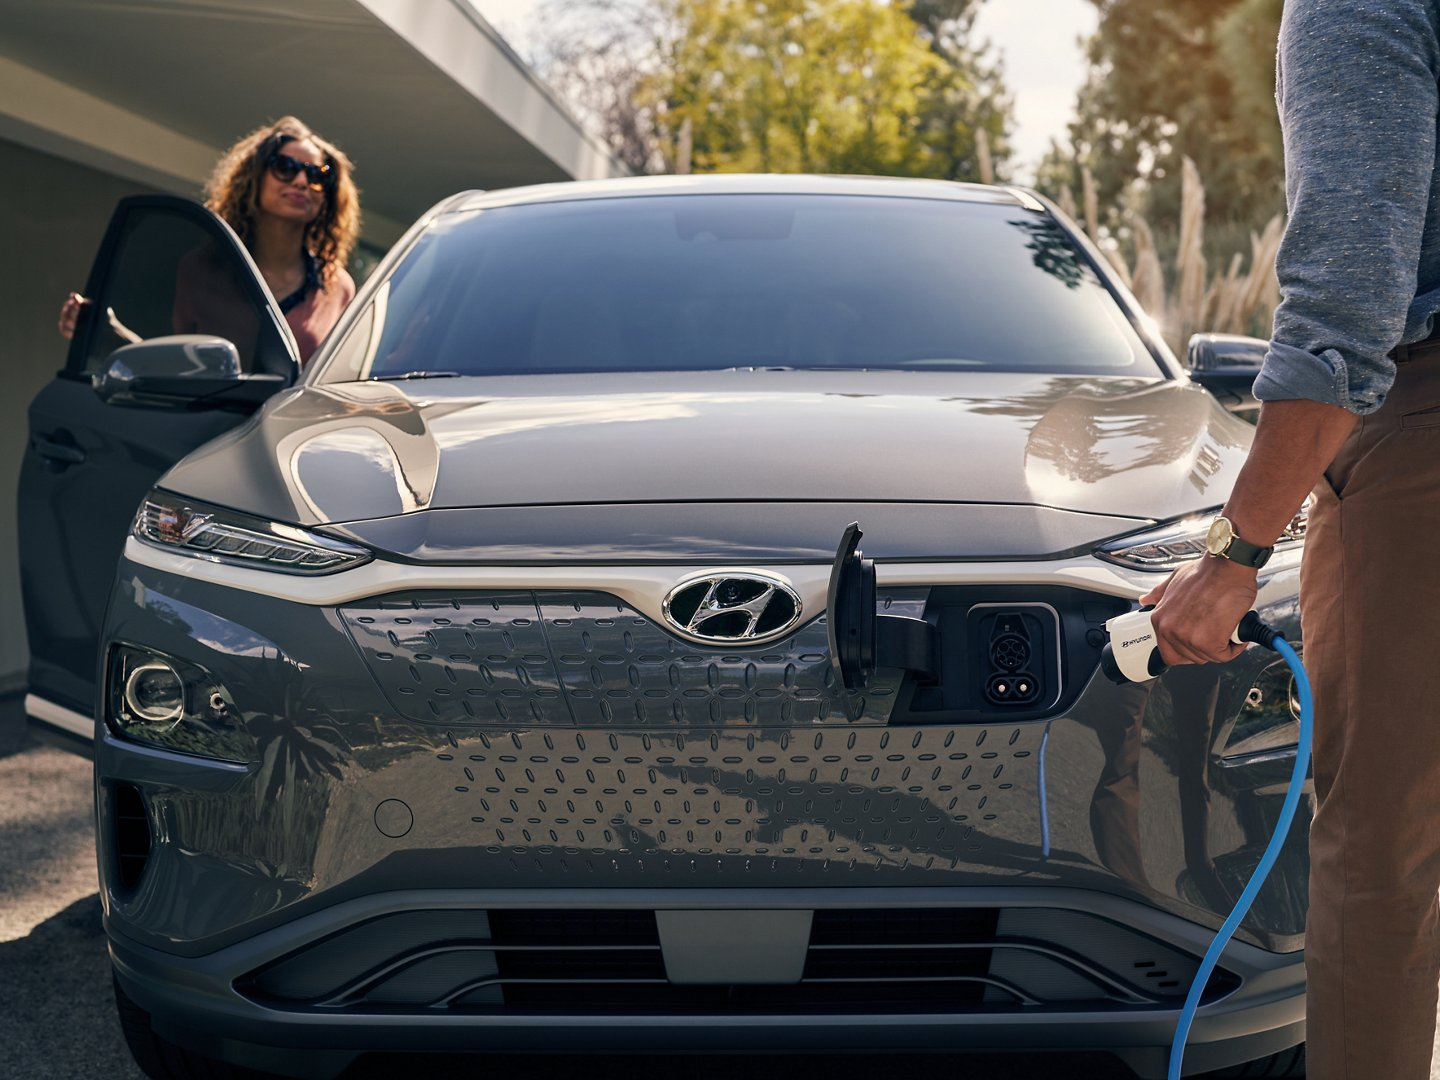 2021 Hyundai Kona Electric being charged